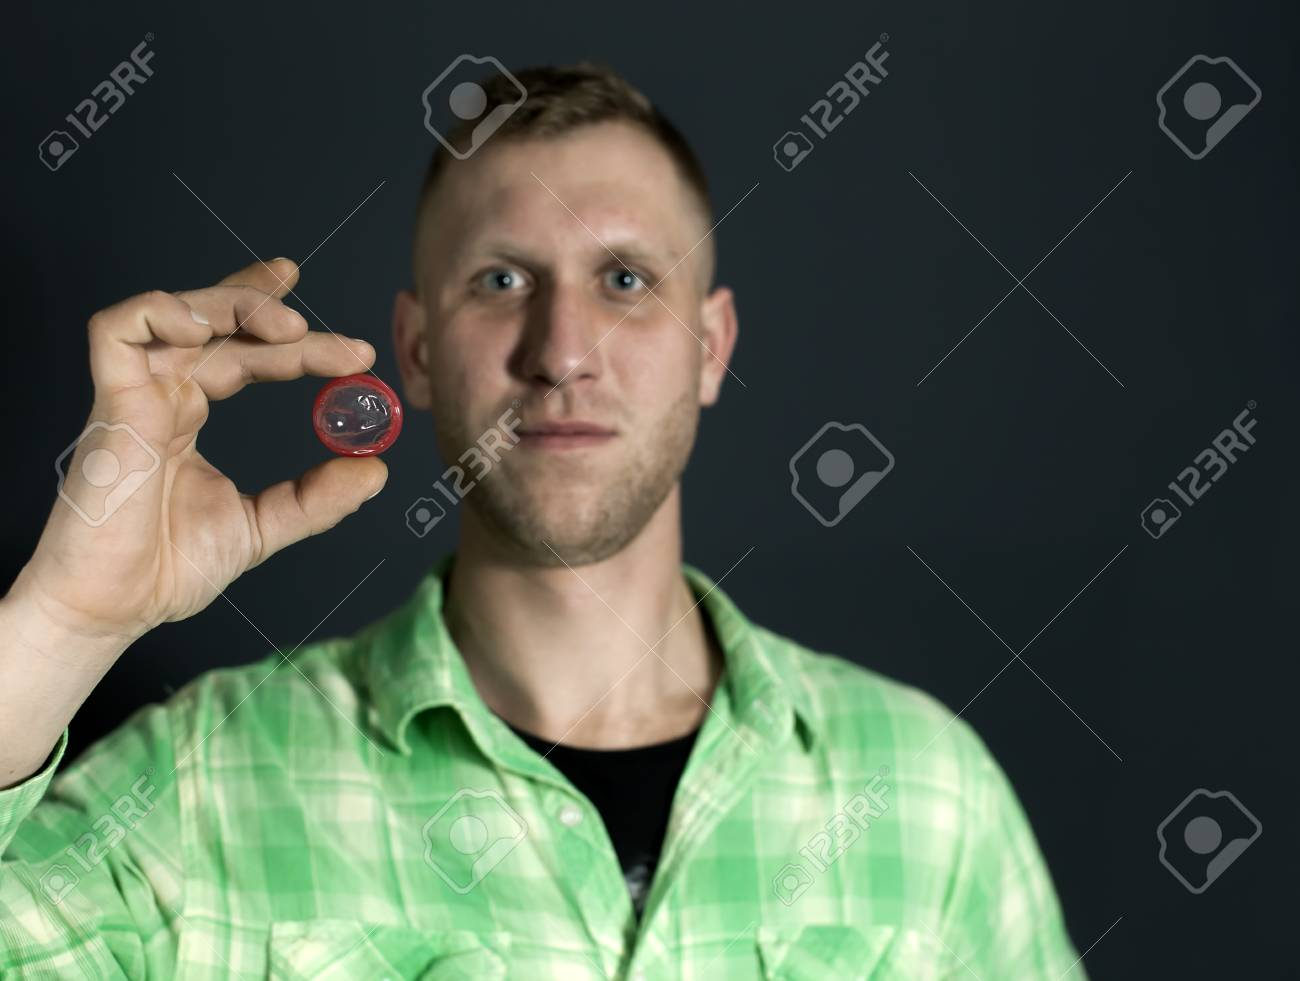 Man show red condom and smile in front of dark background. - 75243659